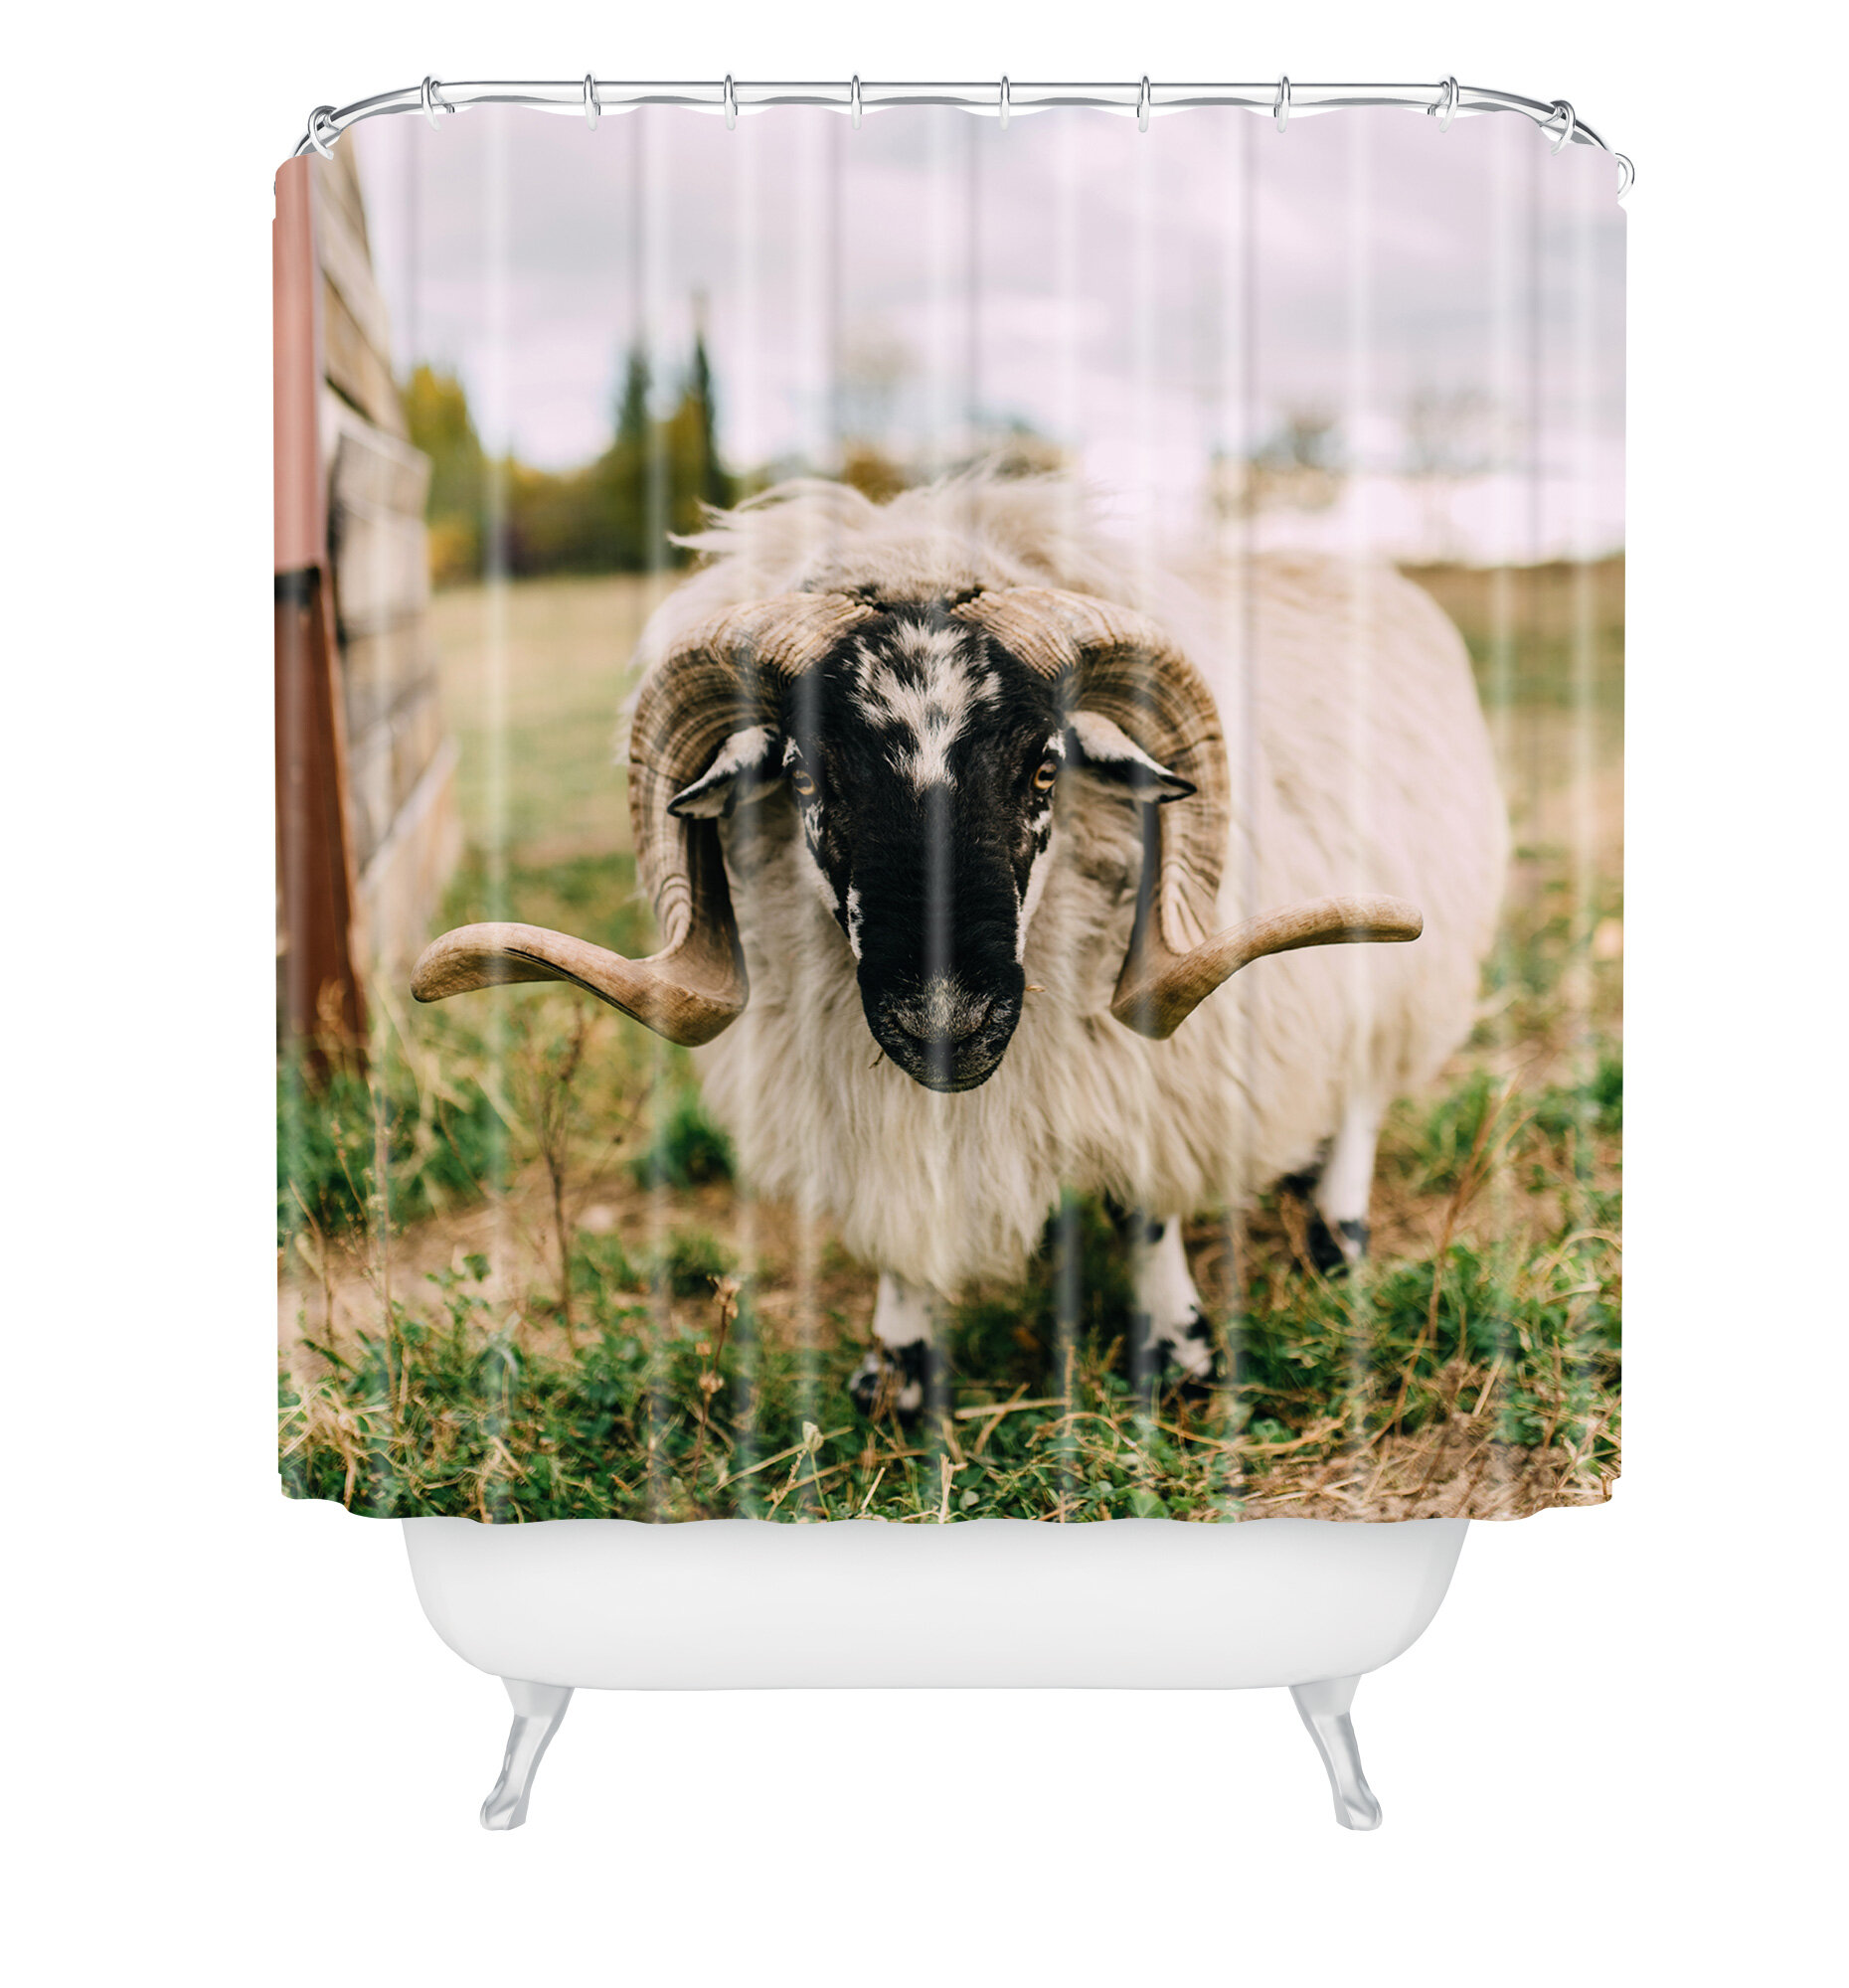 East Urban Home Chelsea Victoria The Curious Sheep Shower Curtain